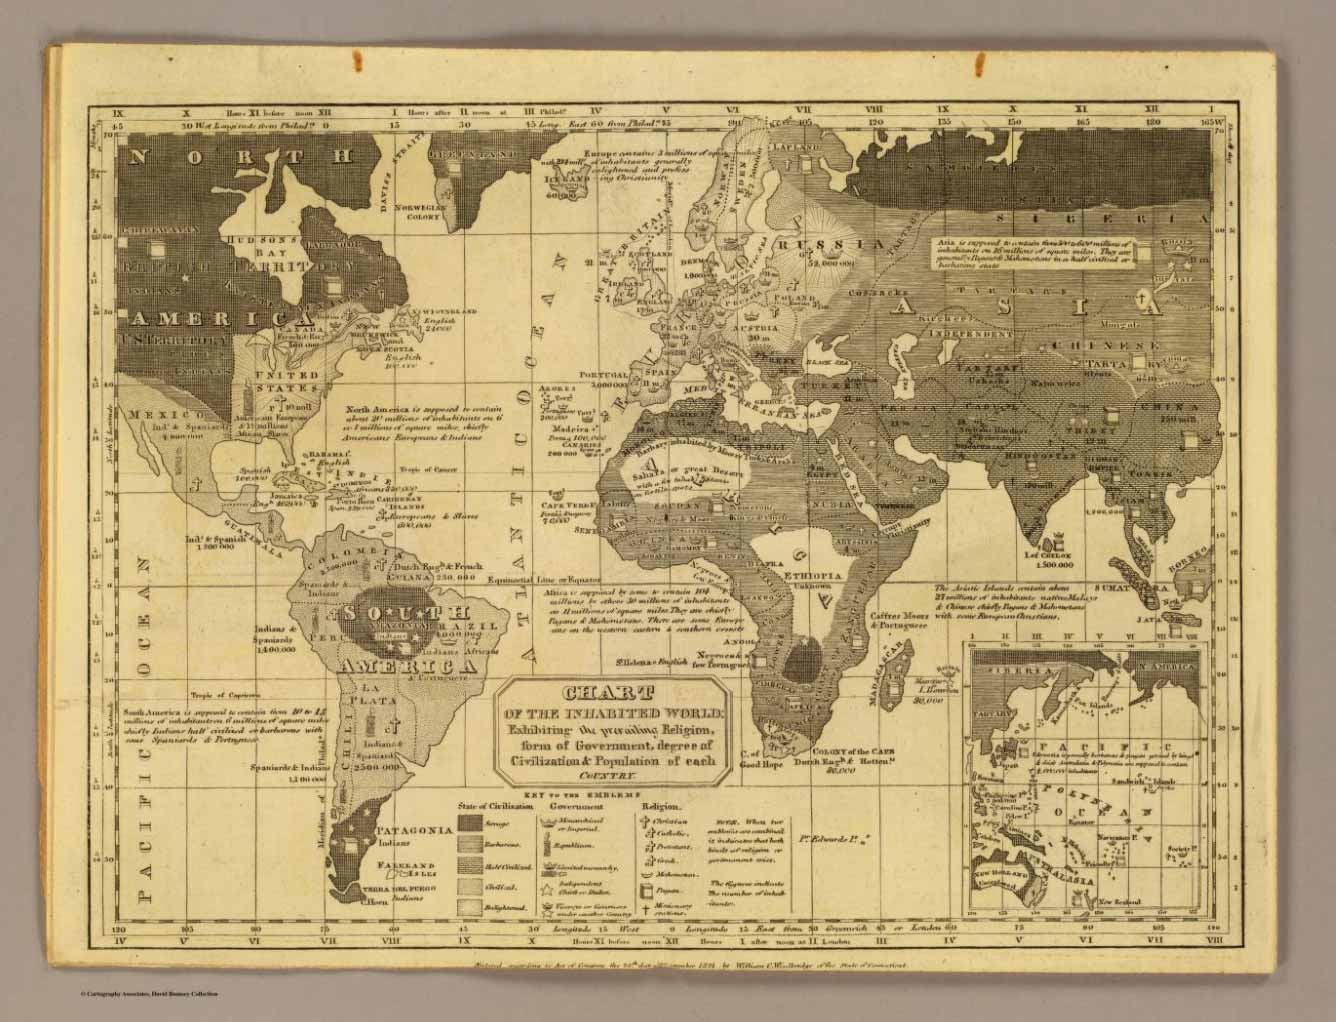 Old Maps Online contains some amazing old maps, such as this one of the inhabited world in 1824.